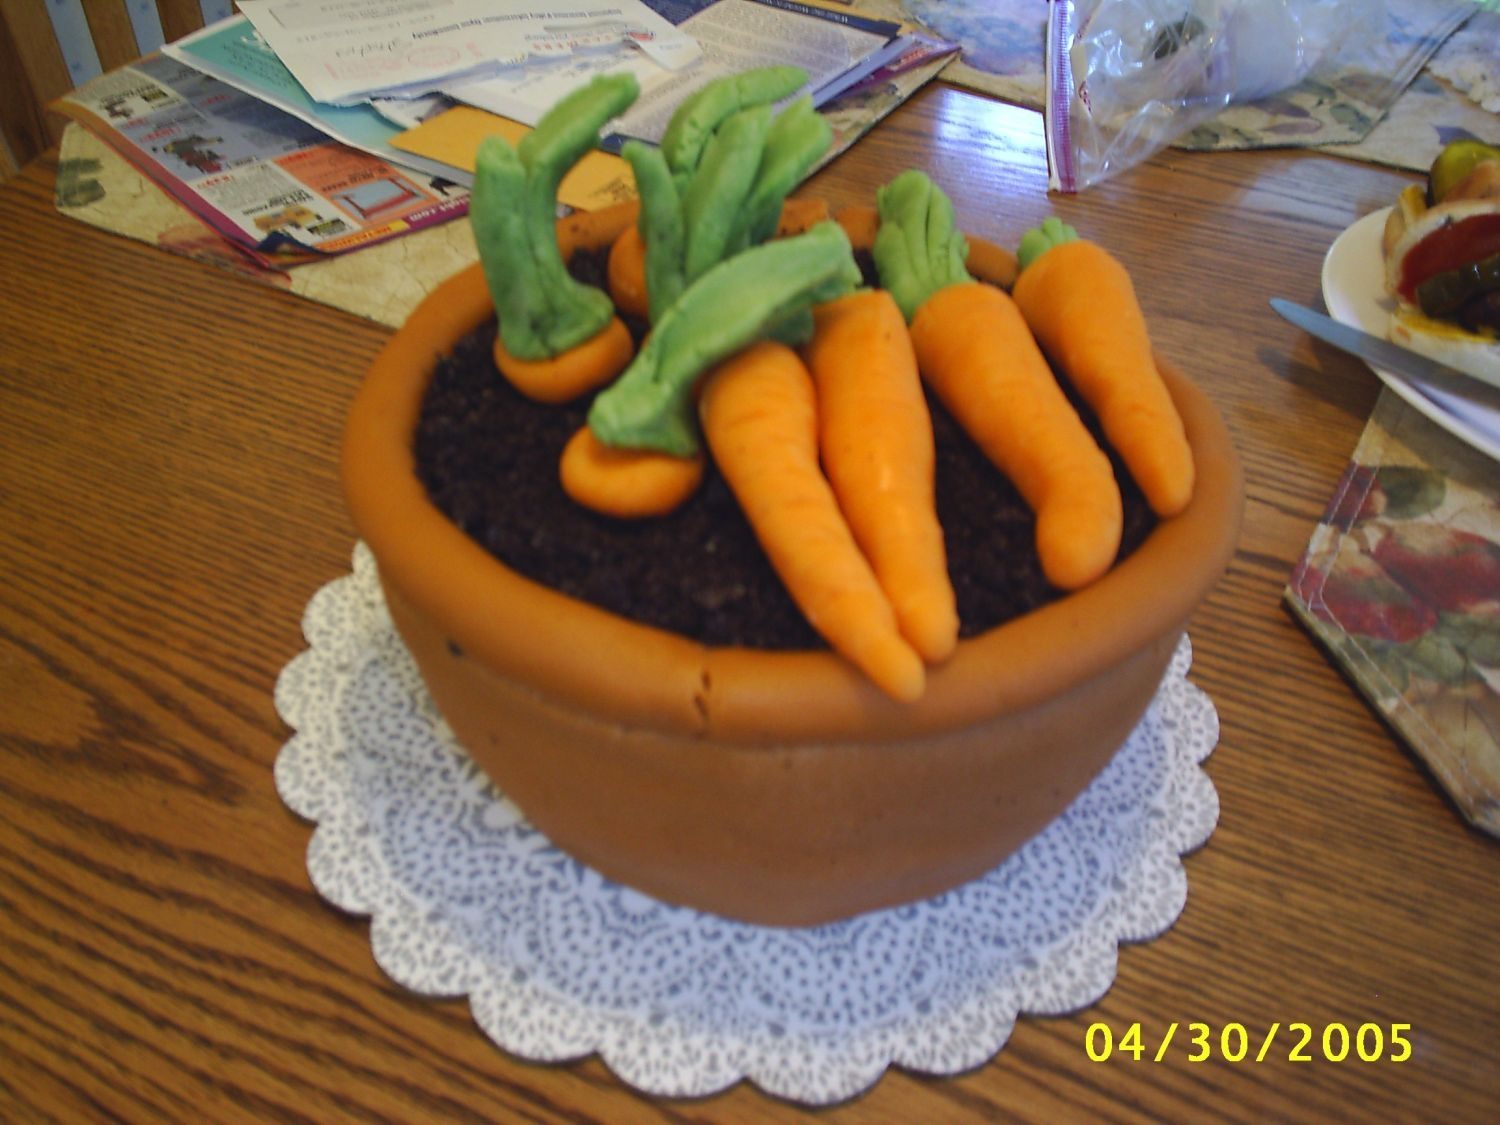 Pot Of Carrots Pot and carrots are marizpan. Dirt is crushed oreos. Cake was sculpted from round layer cake.